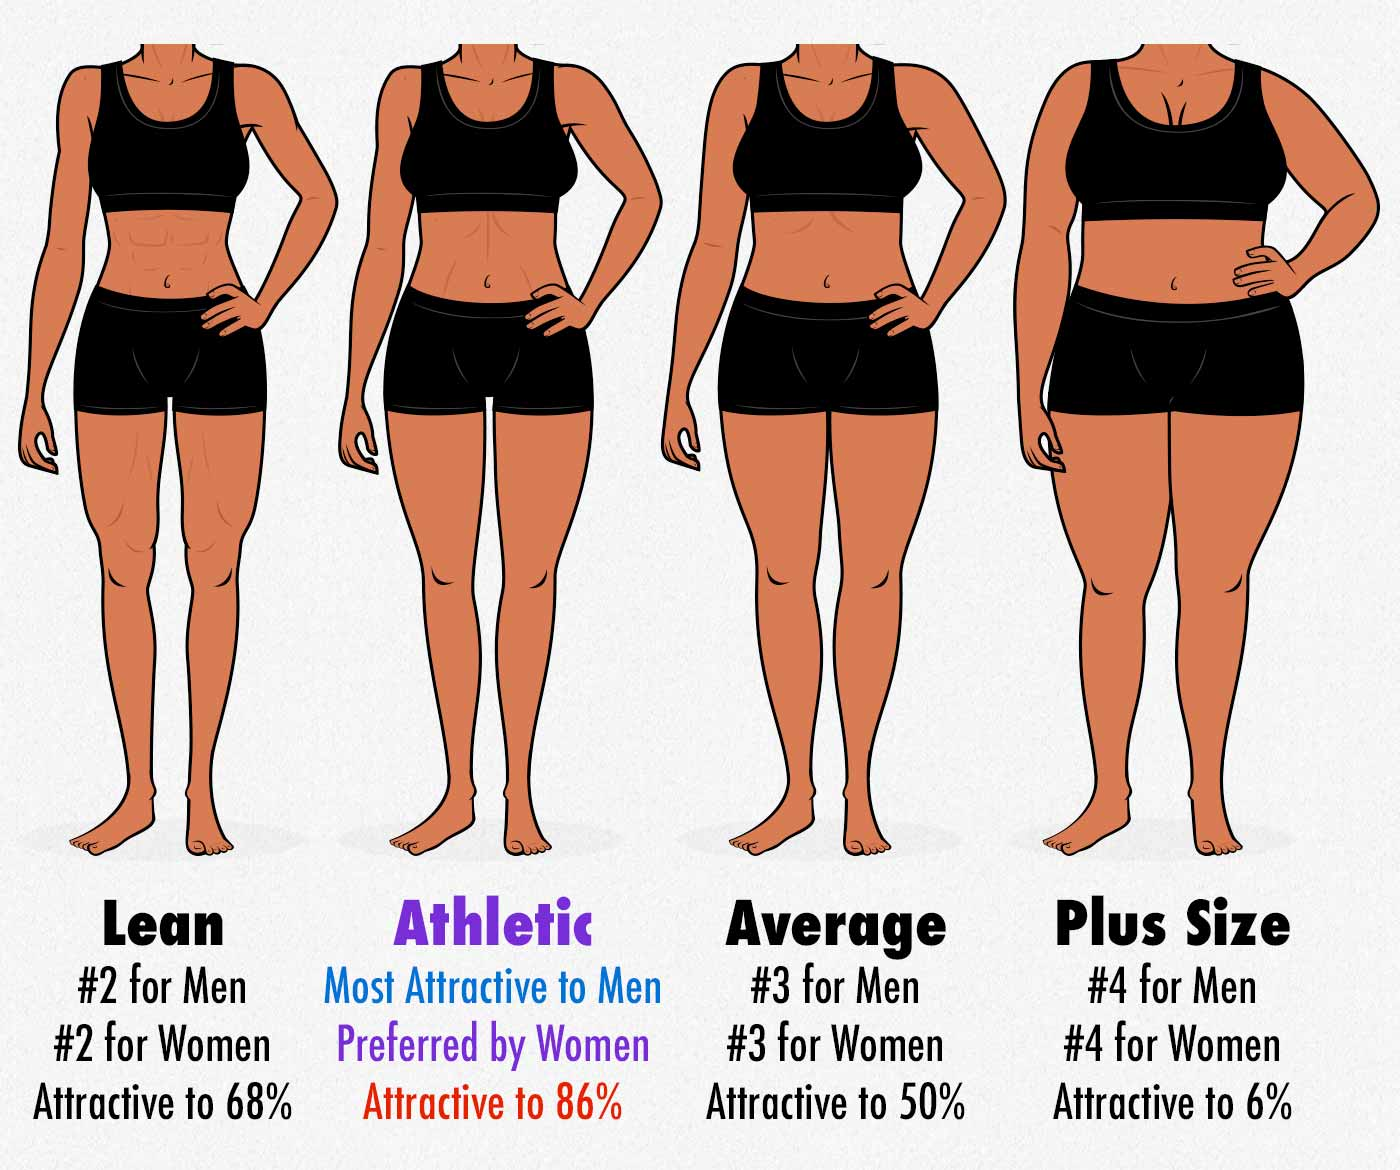 Survey results showing the most attractive body-fat percentage for women.